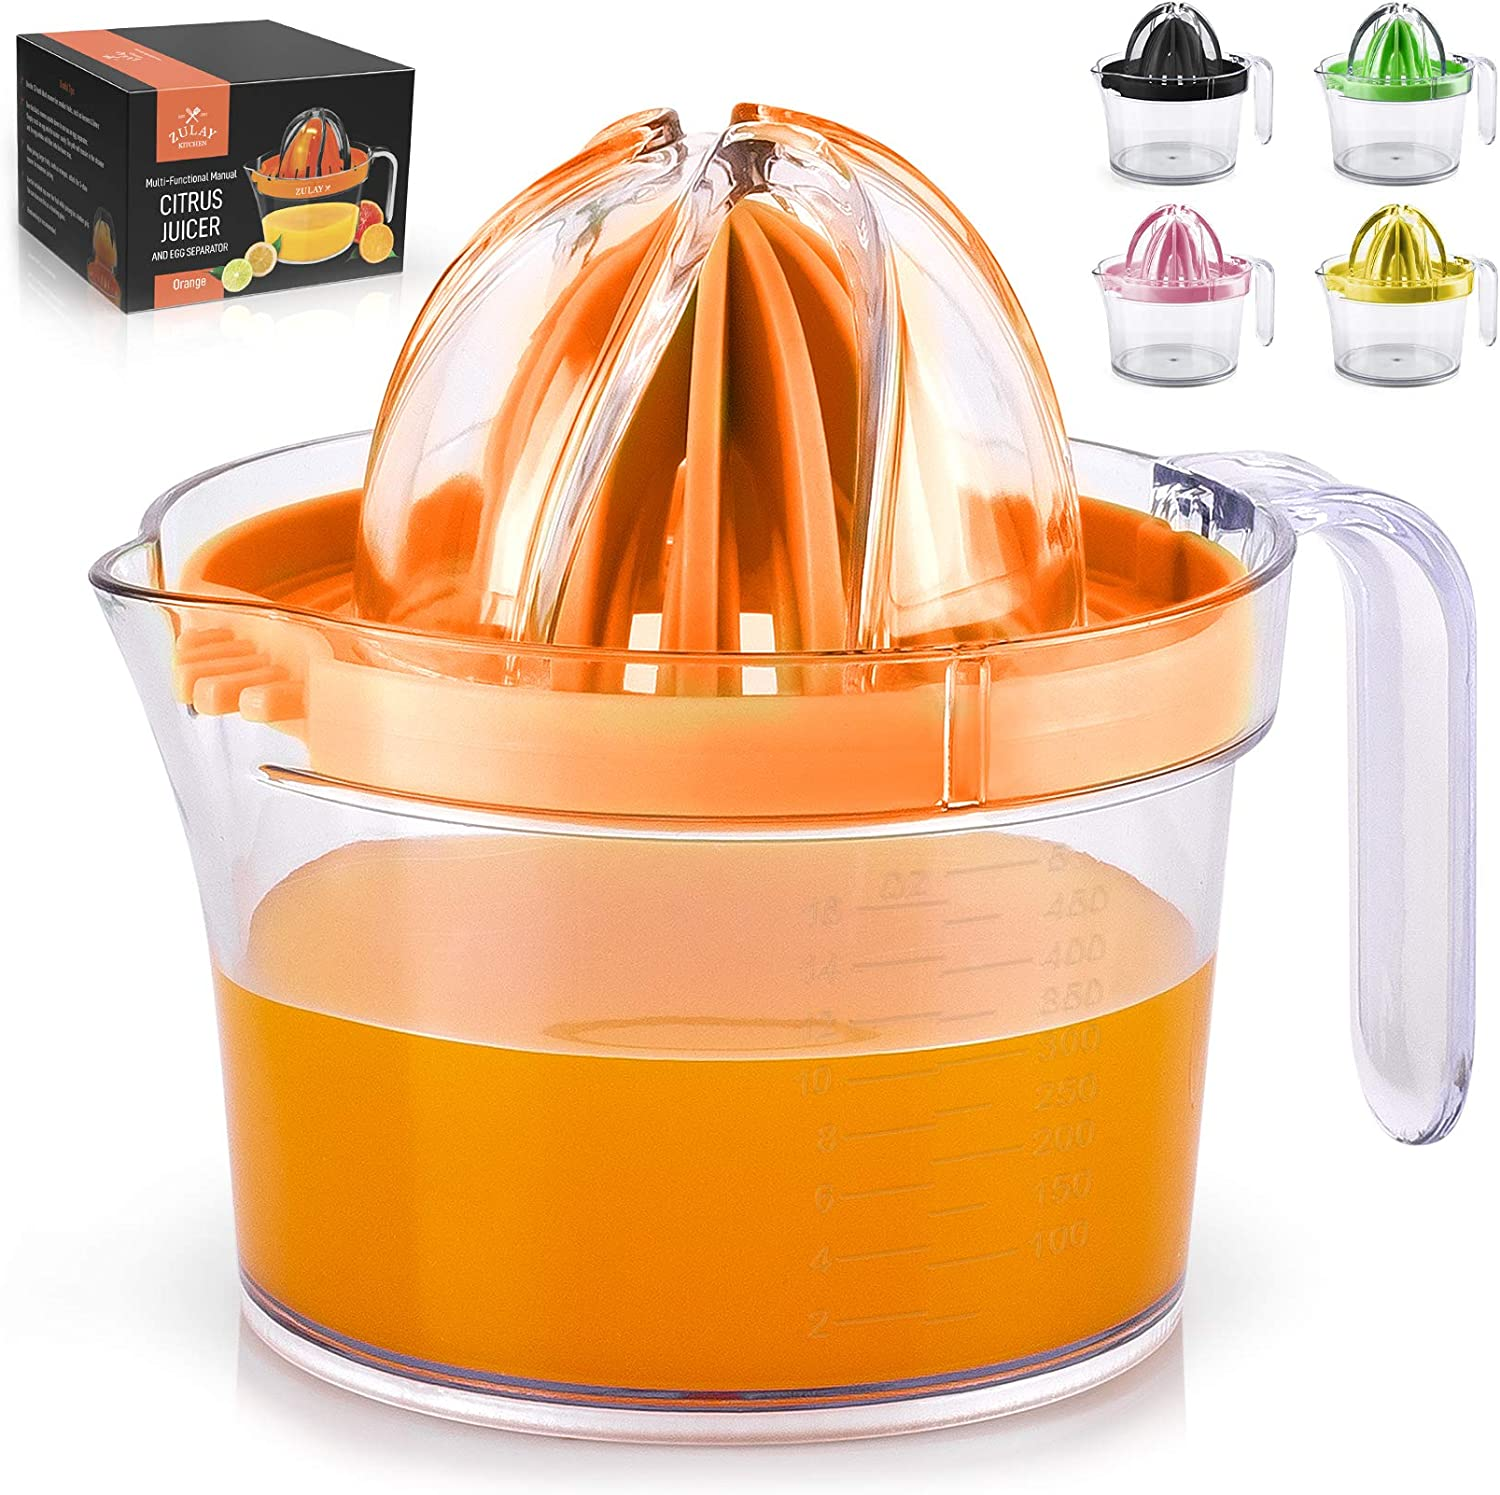 Zulay (17oz Capacity) Citrus Juicer Hand Press - Multifunctional Hand Juicer With Egg Separator, Large Reamer Adaptor, & Built-in Handle - Manual Juicer For Oranges, Lemons, Limes & More (Orange)